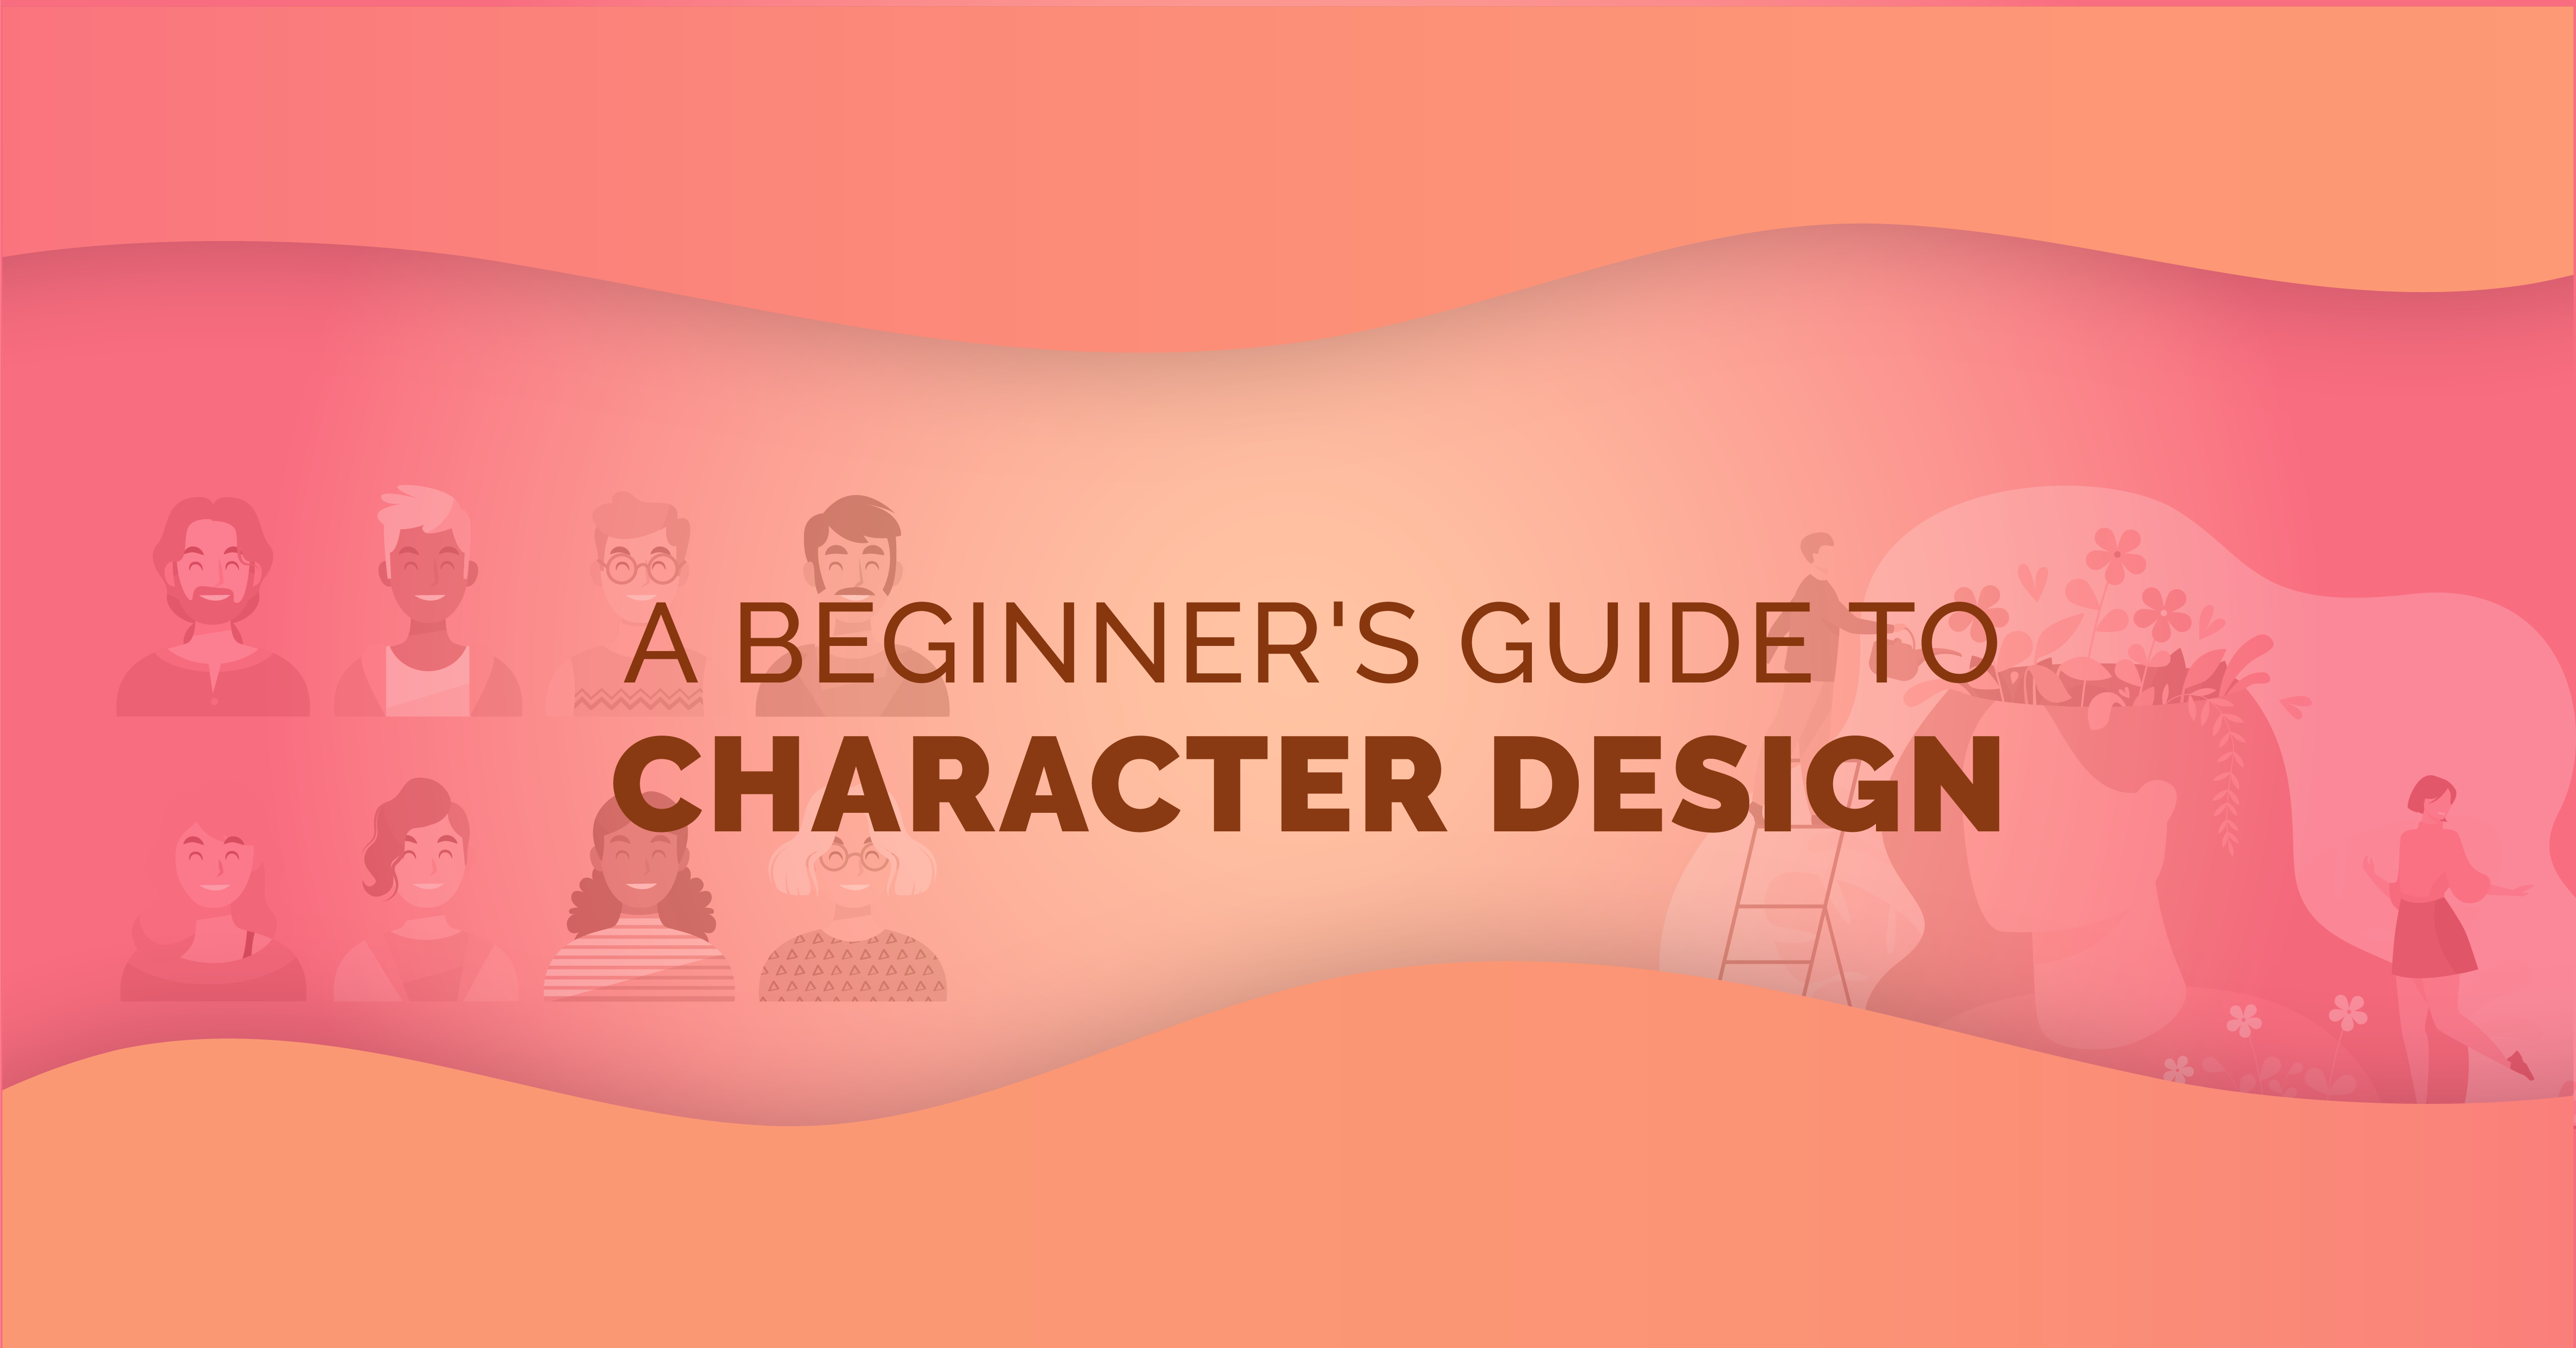 A Beginner's Guide to Character Design